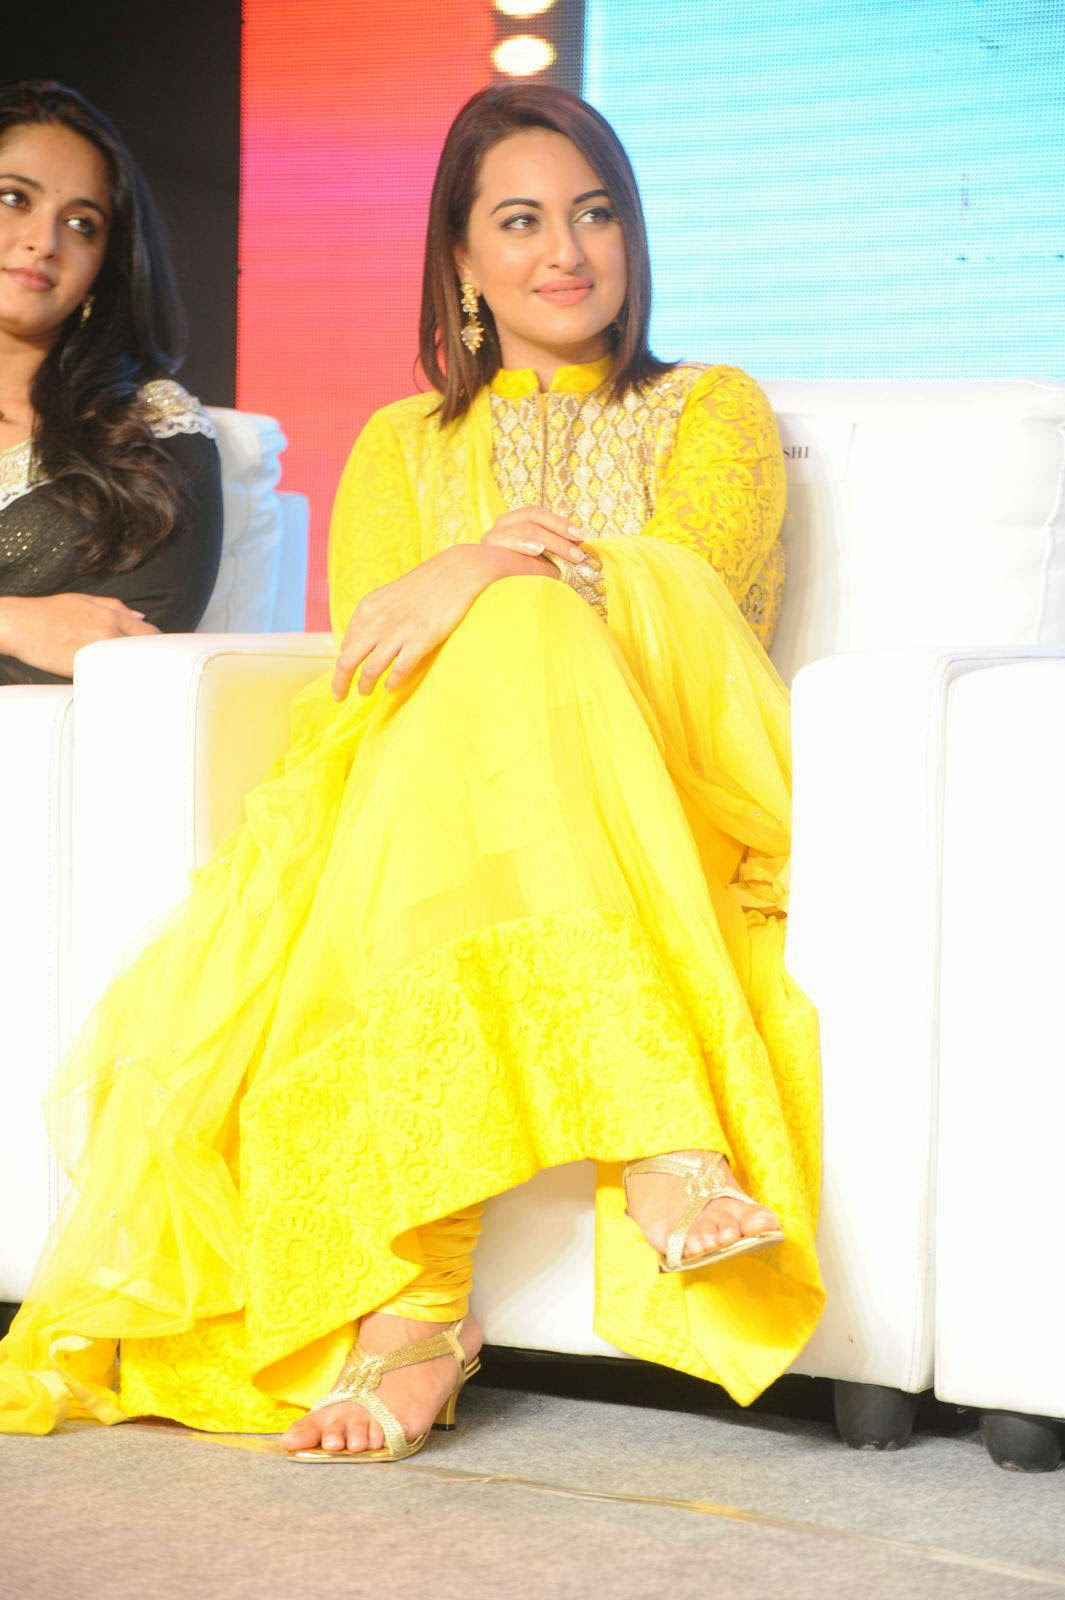 Sonakshi Sinha Feet Photo Gallery, Sonakshi Sinha Yellow Suit Pics from Lingaa Movie Event